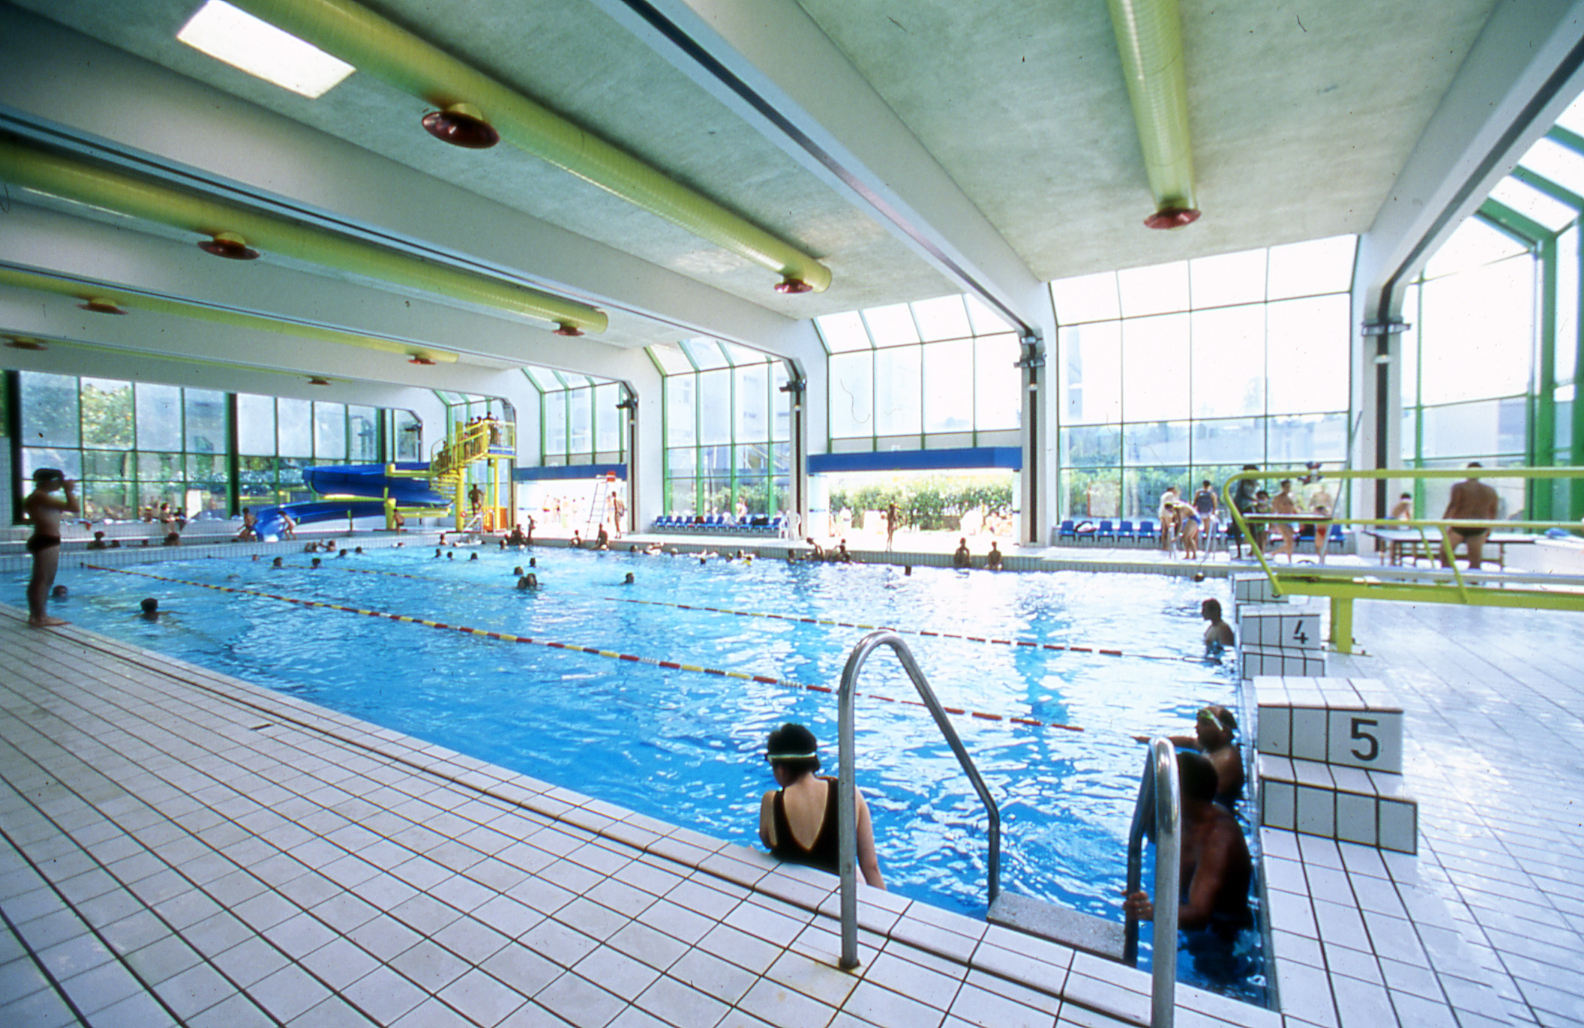 Piscine champerret sport 17e arrondissement paris - Piscine paris 8eme arrondissement ...